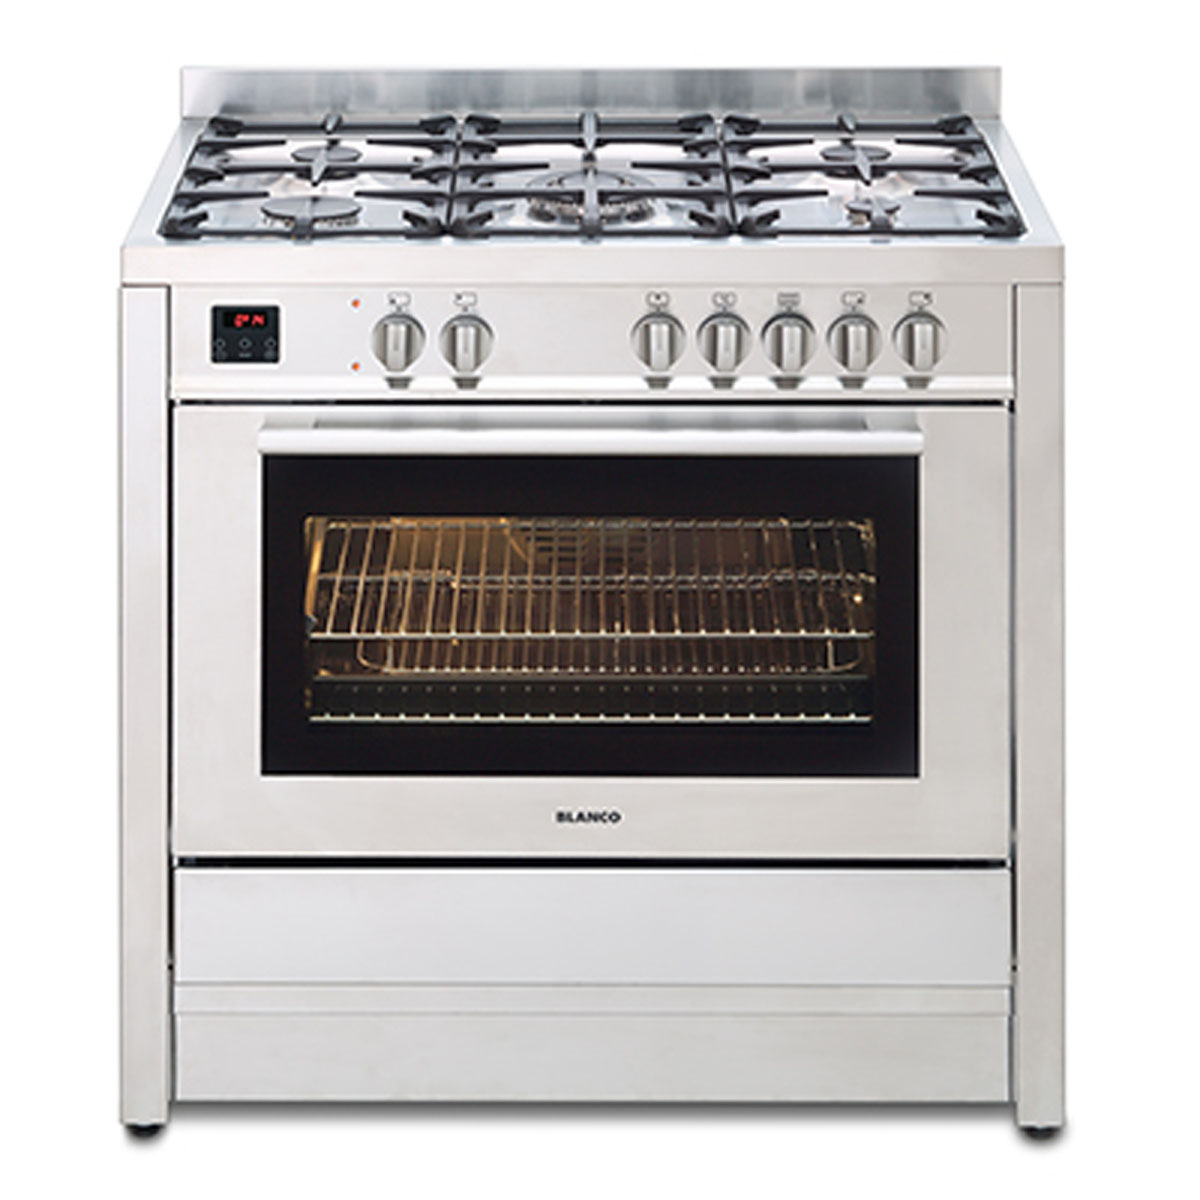 Blanco BFD9058WX 90cm Freestanding Cooker